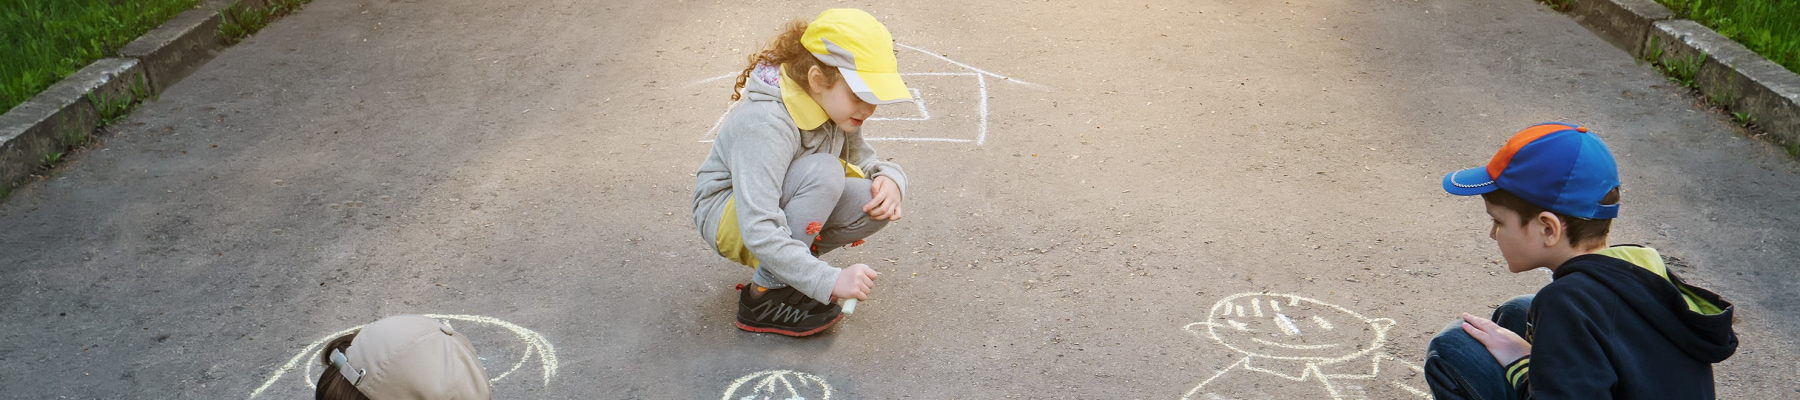 Boy and girl in hats drawing with sidewalk chalk